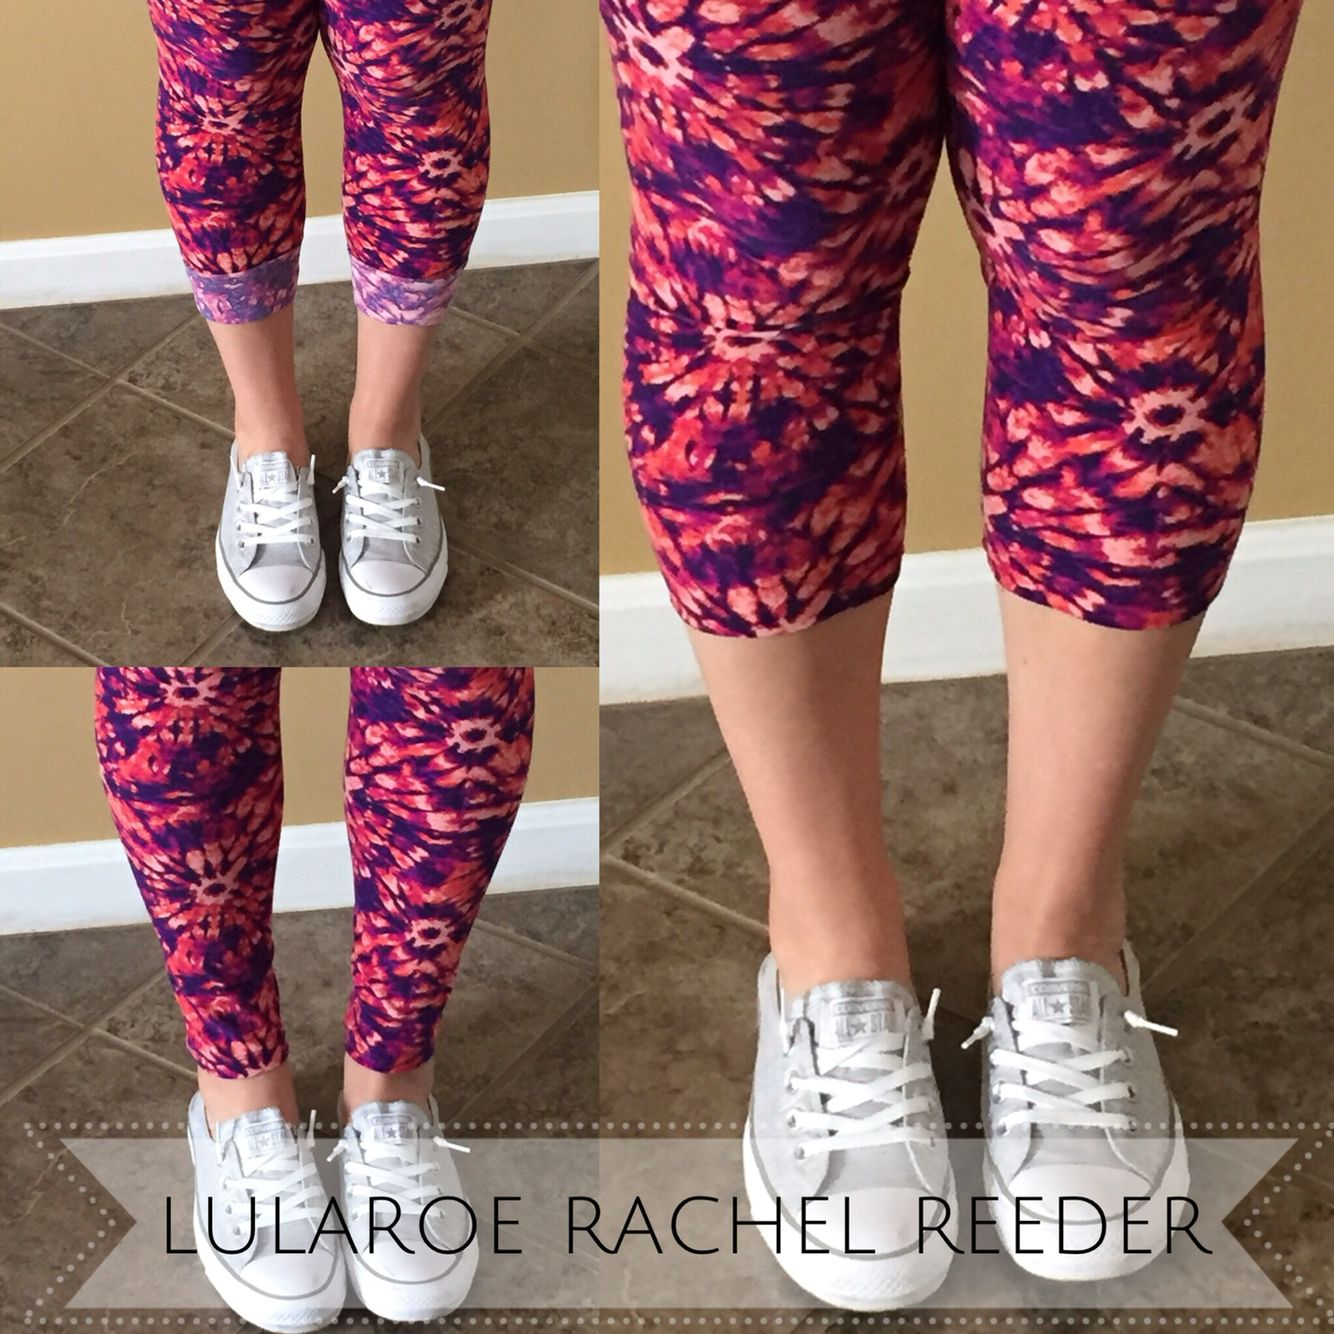 4a5efb8ab0 A few different ways to wear your #LuLaRoe #Leggings! Isn't the #tiedye  print on…